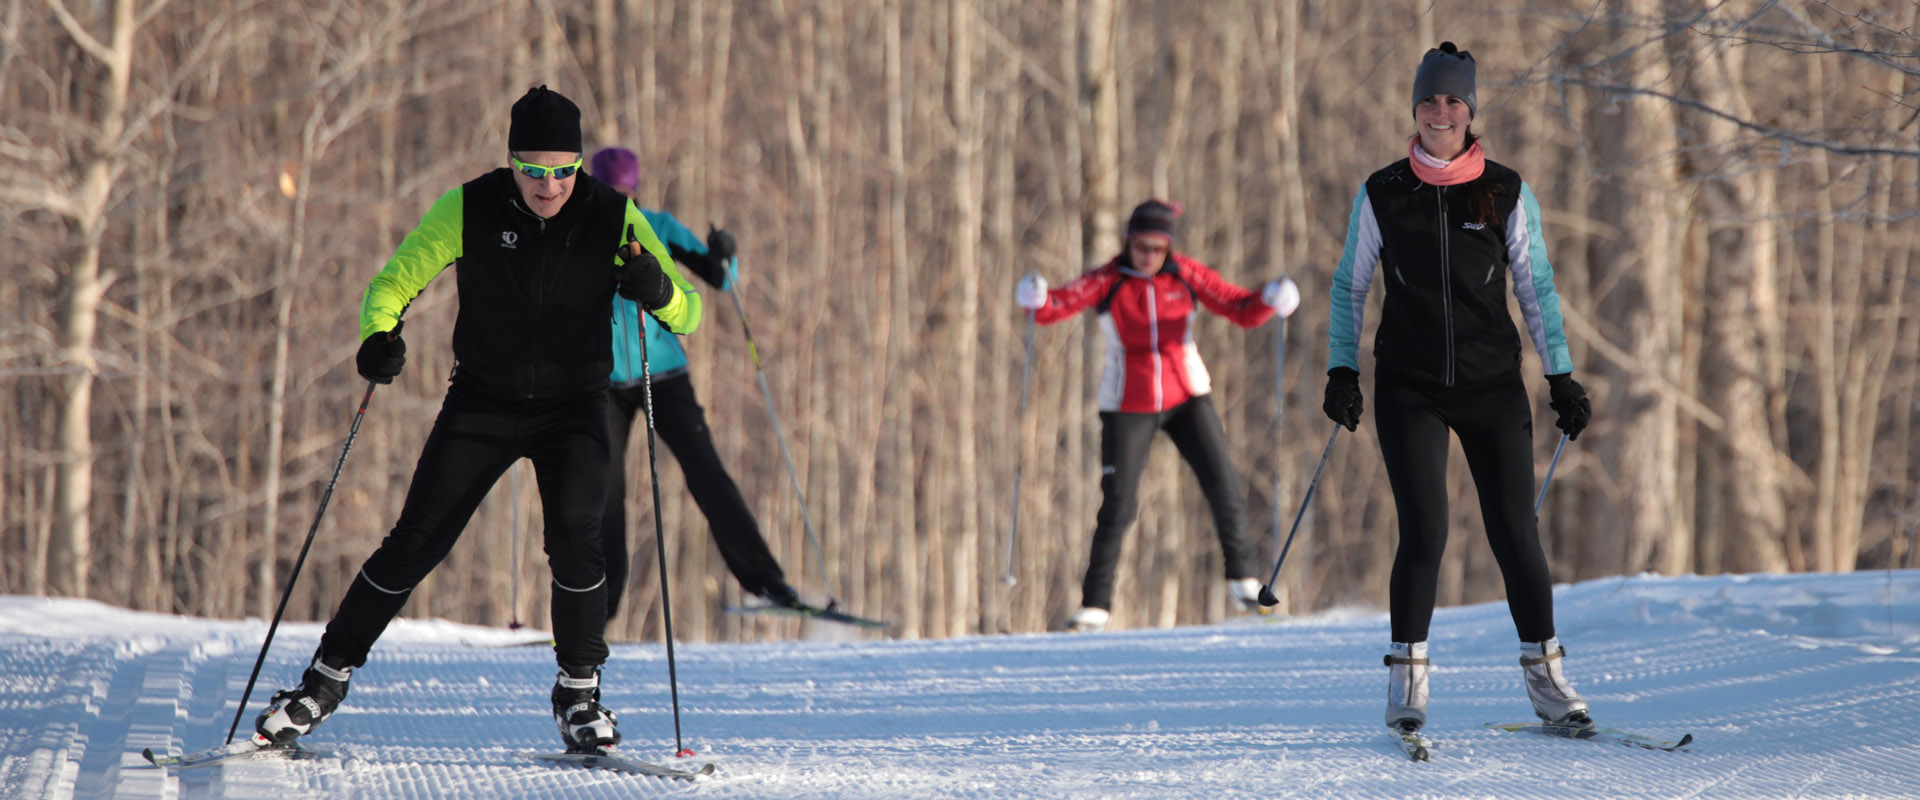 MSIA Michigan Snowsports Cross Country Ski Michigan